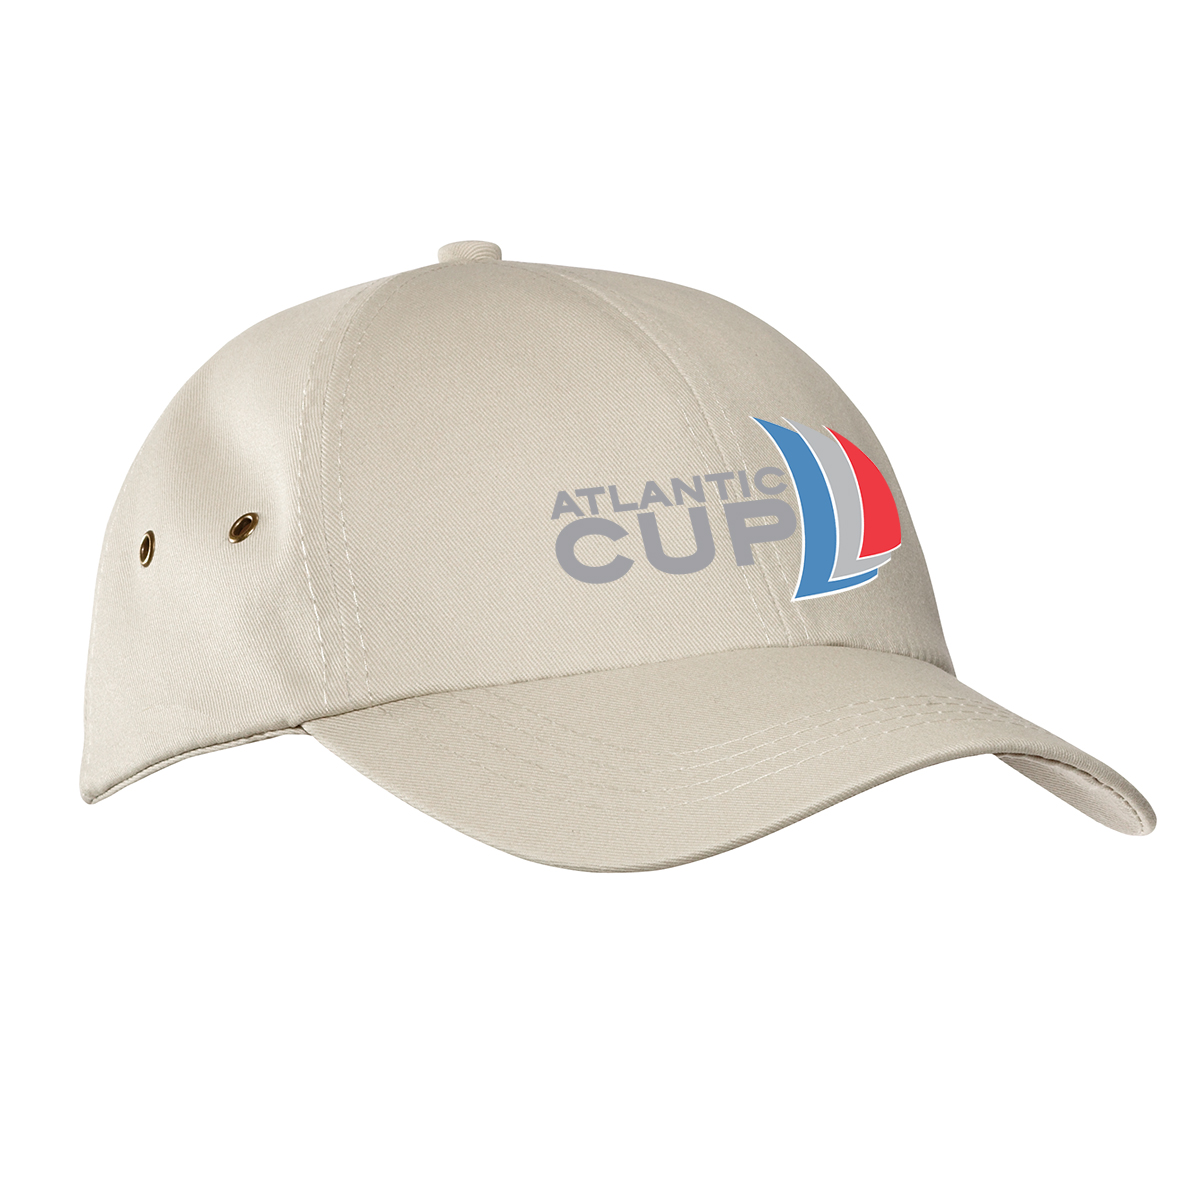 Atlantic Cup - Low Profile Twill Cap